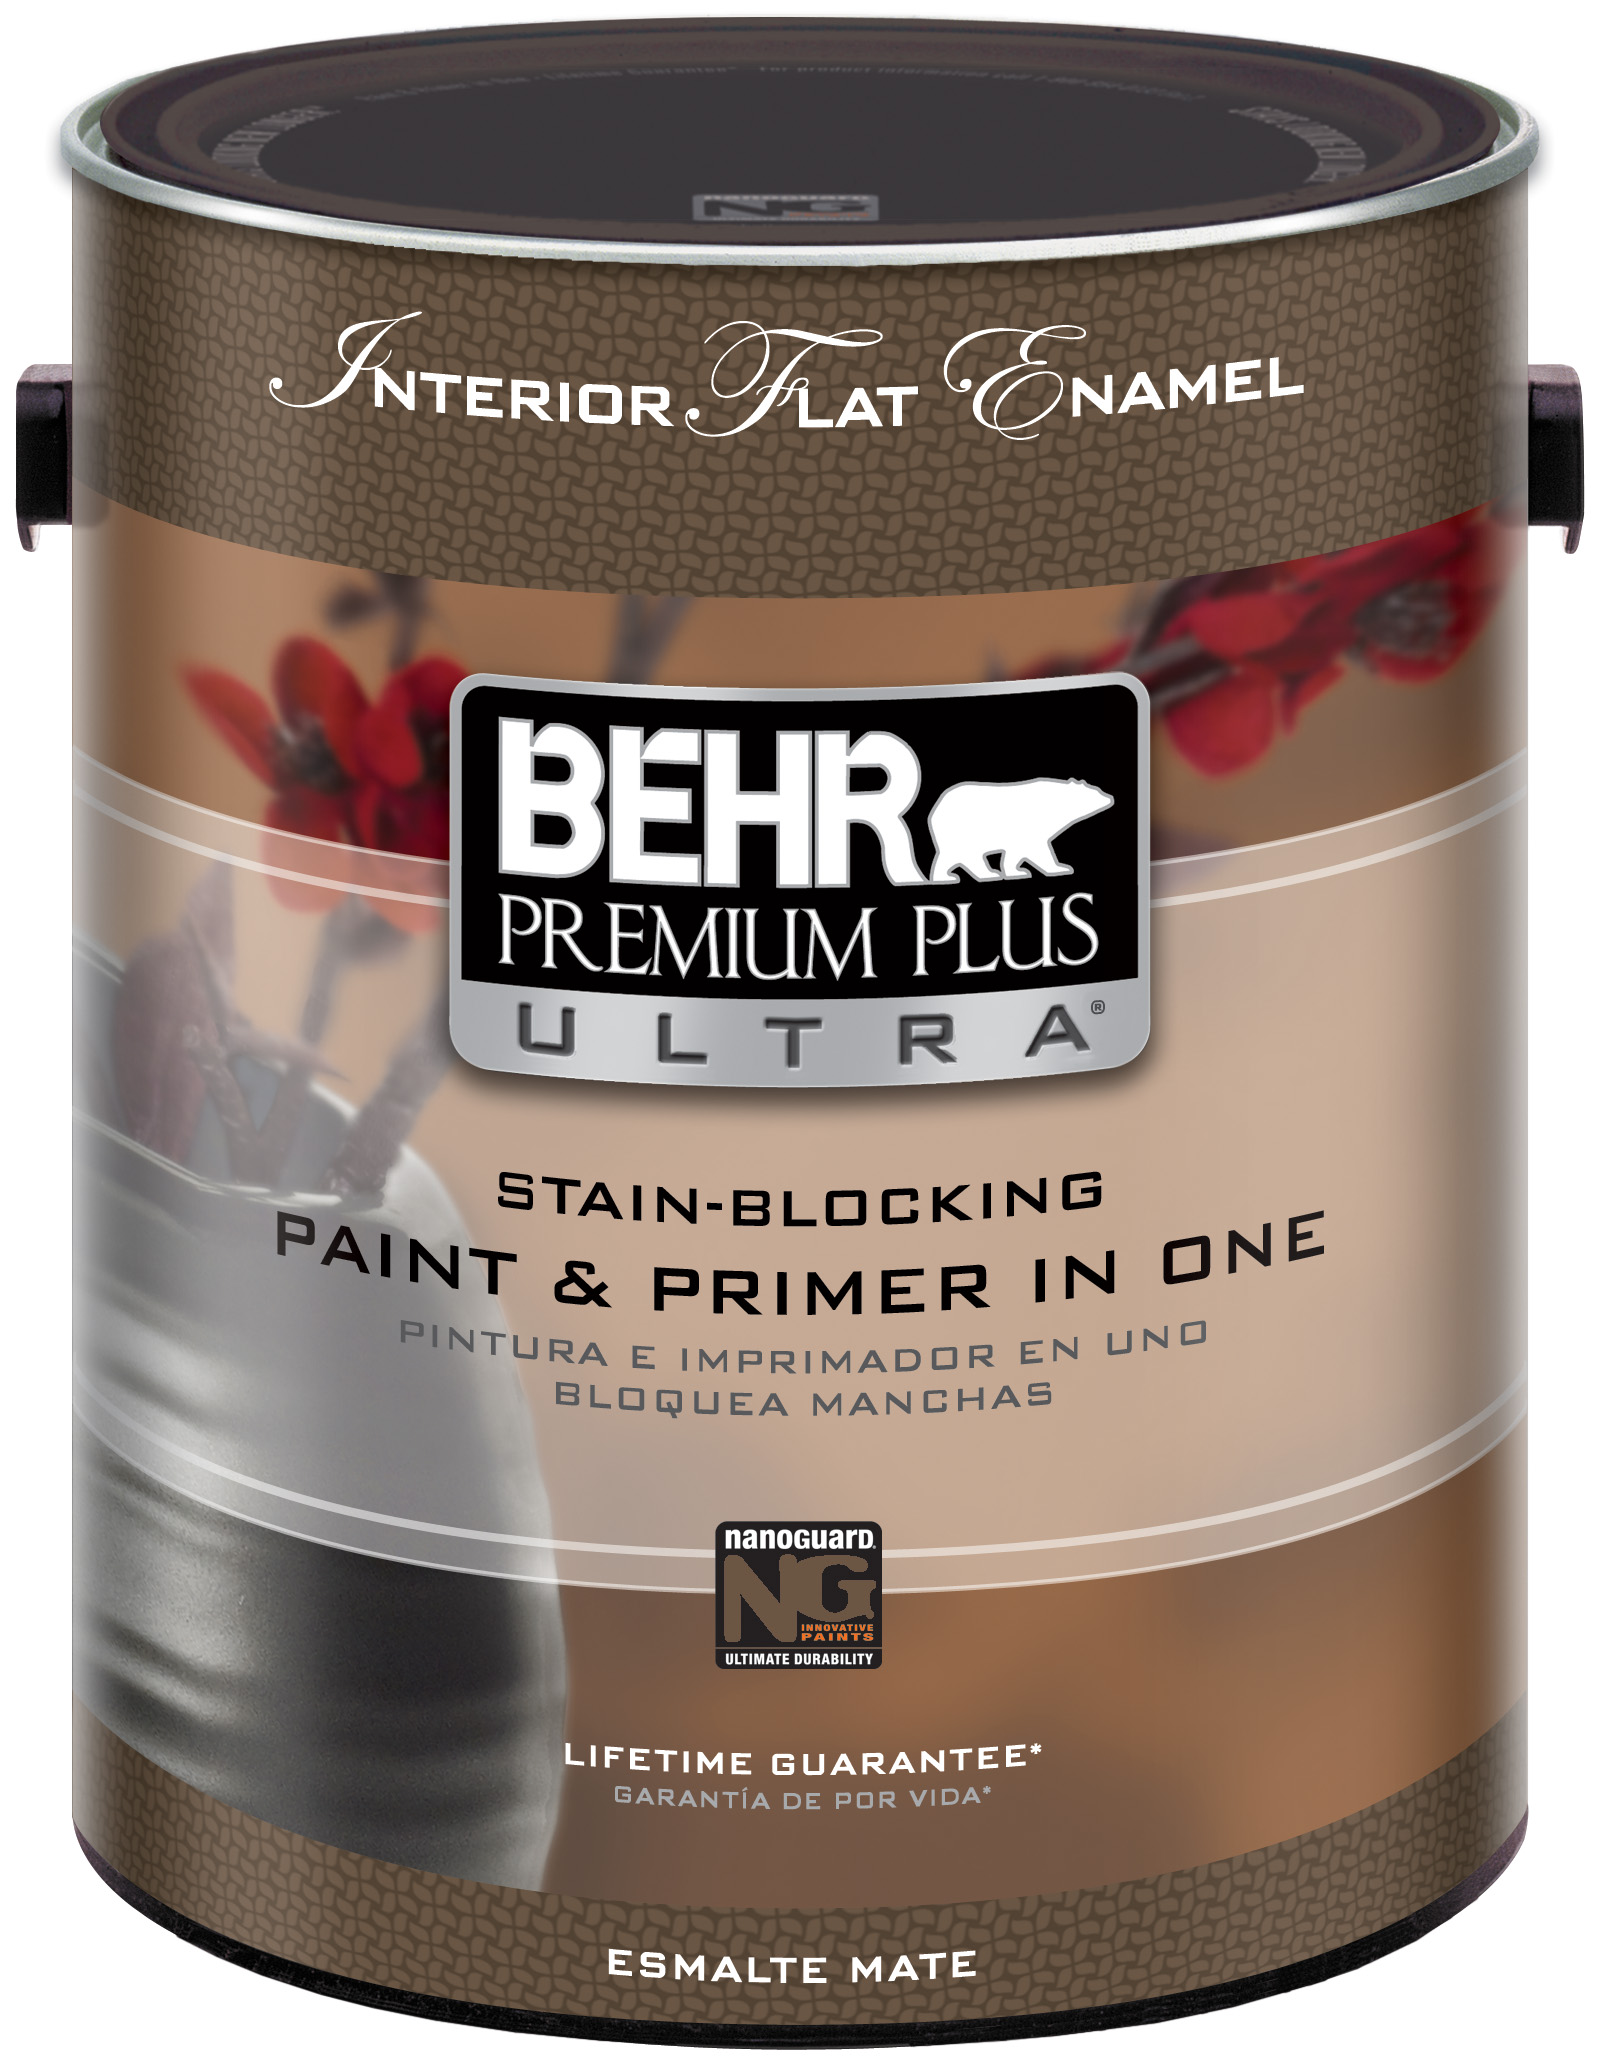 better than ever enhanced behr premium plus ultra interior paint. Black Bedroom Furniture Sets. Home Design Ideas